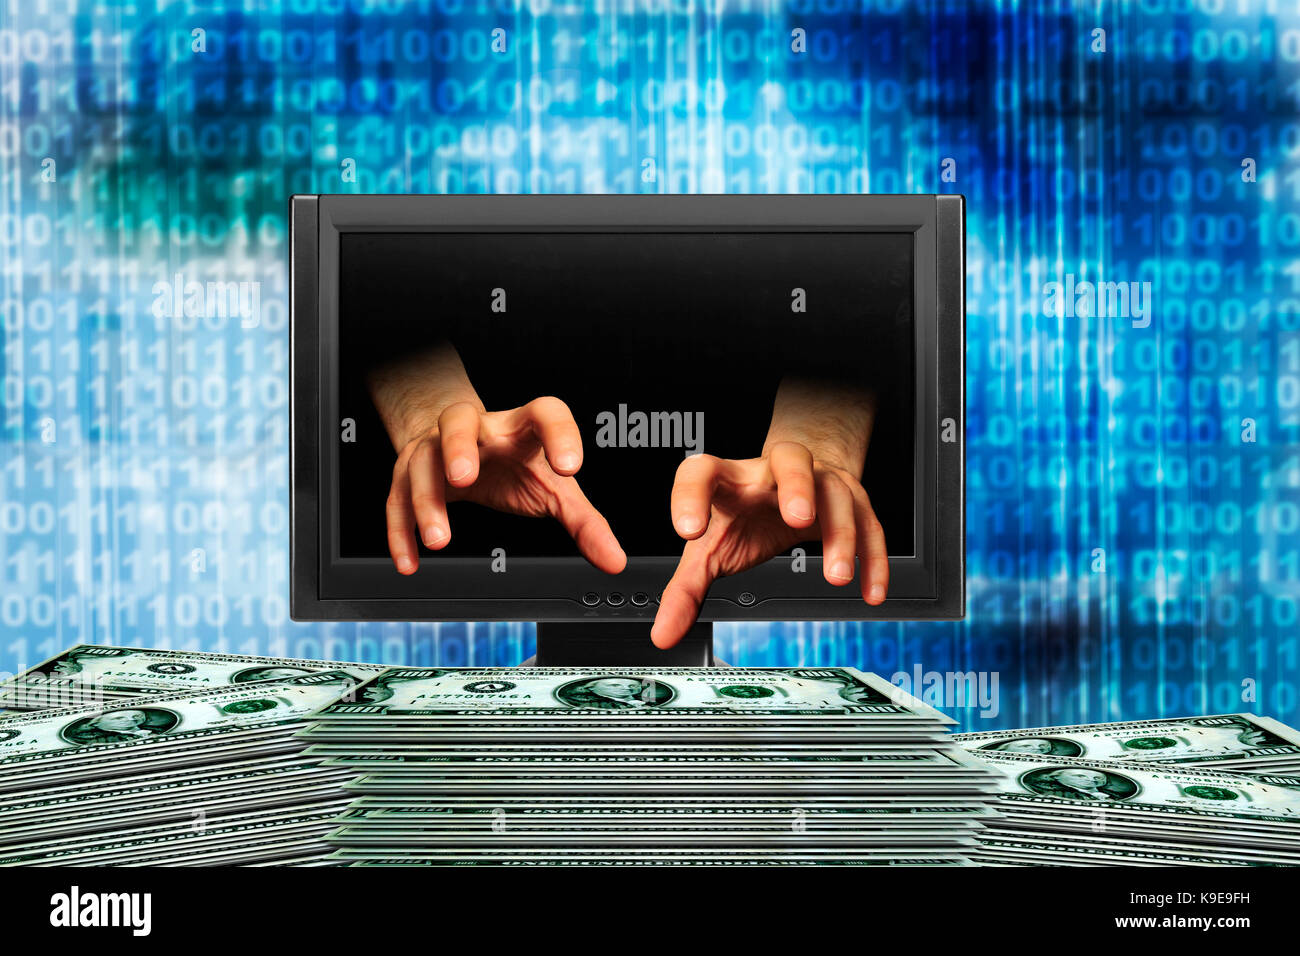 hands coming out of a computer monitor grabbing money, internet fraud or crime - Stock Image